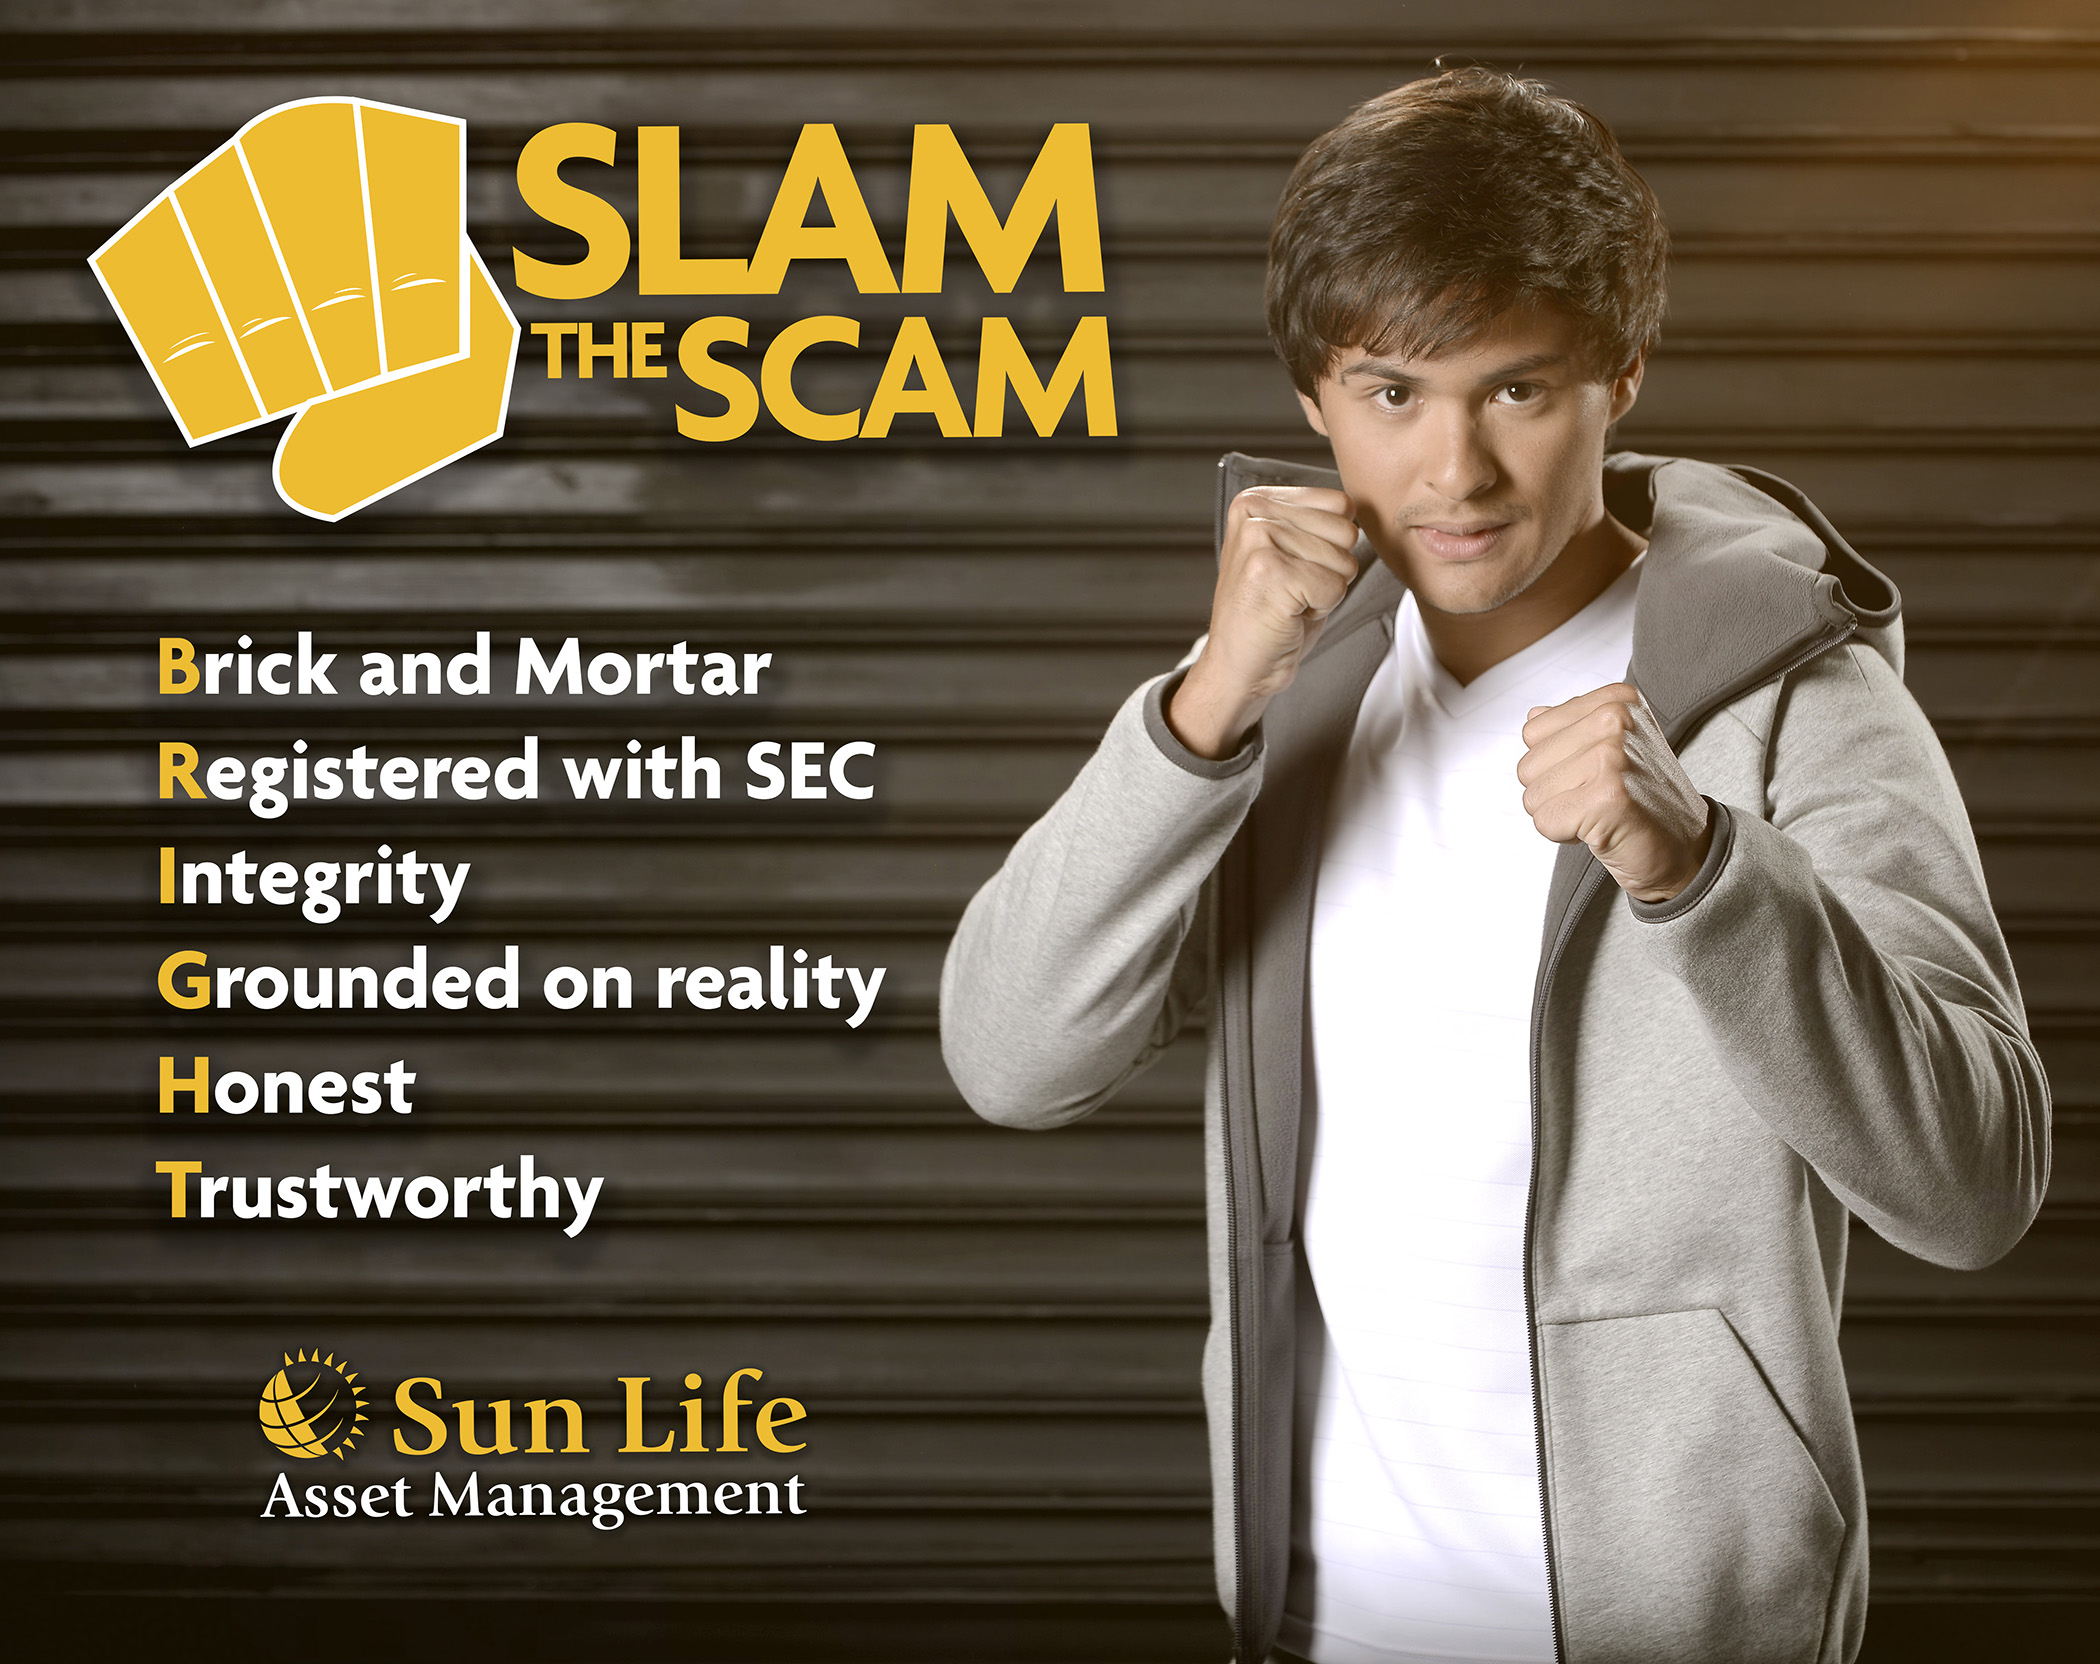 SLAMCI launches campaign against investment scams